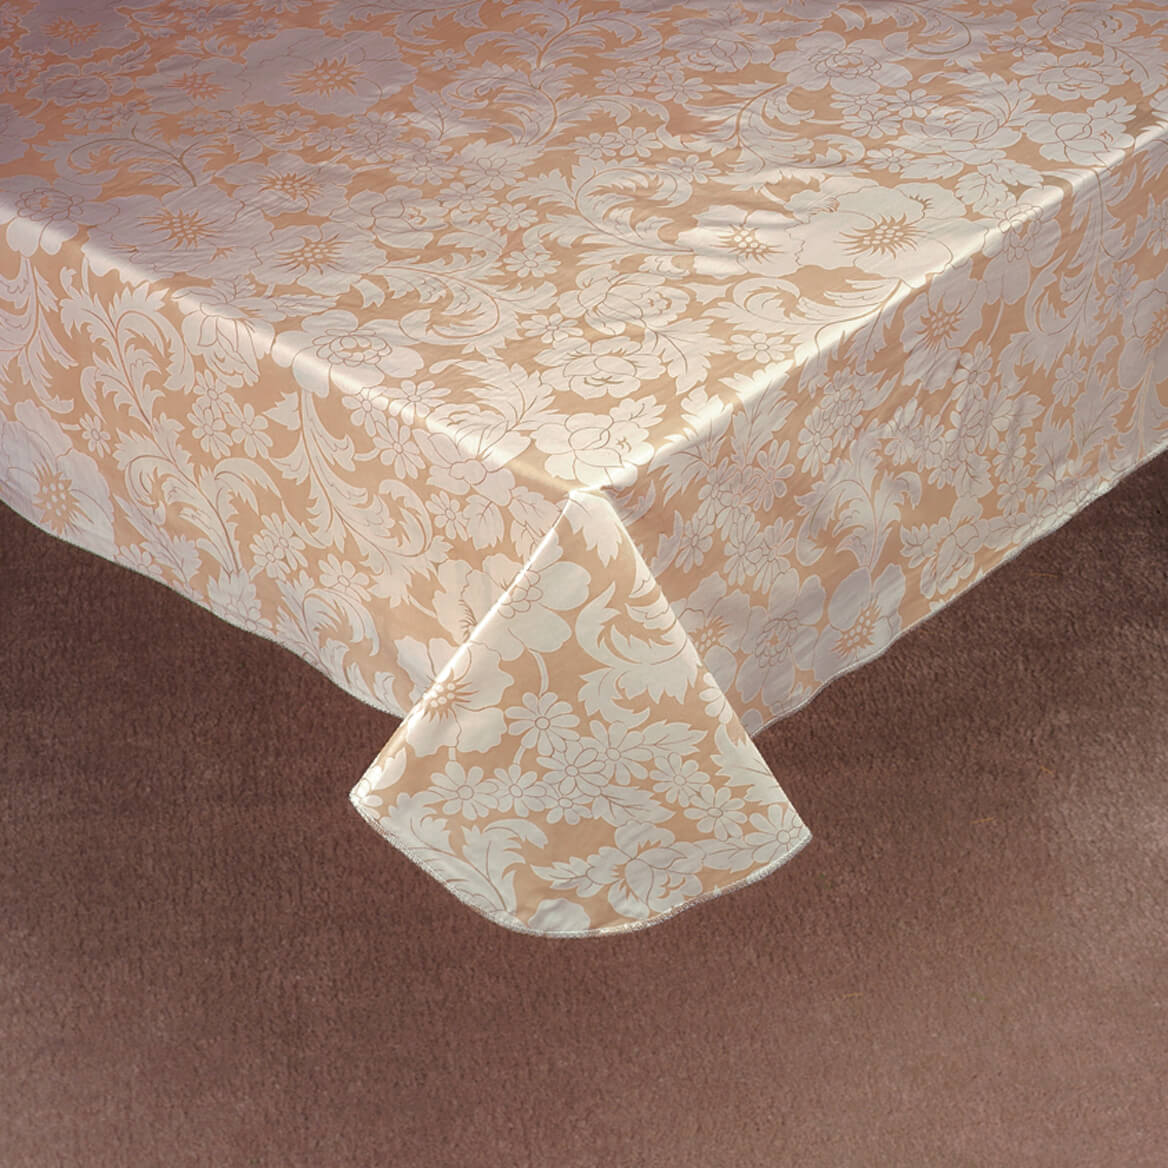 Bordeaux Floral Vinyl Table Cover 344552